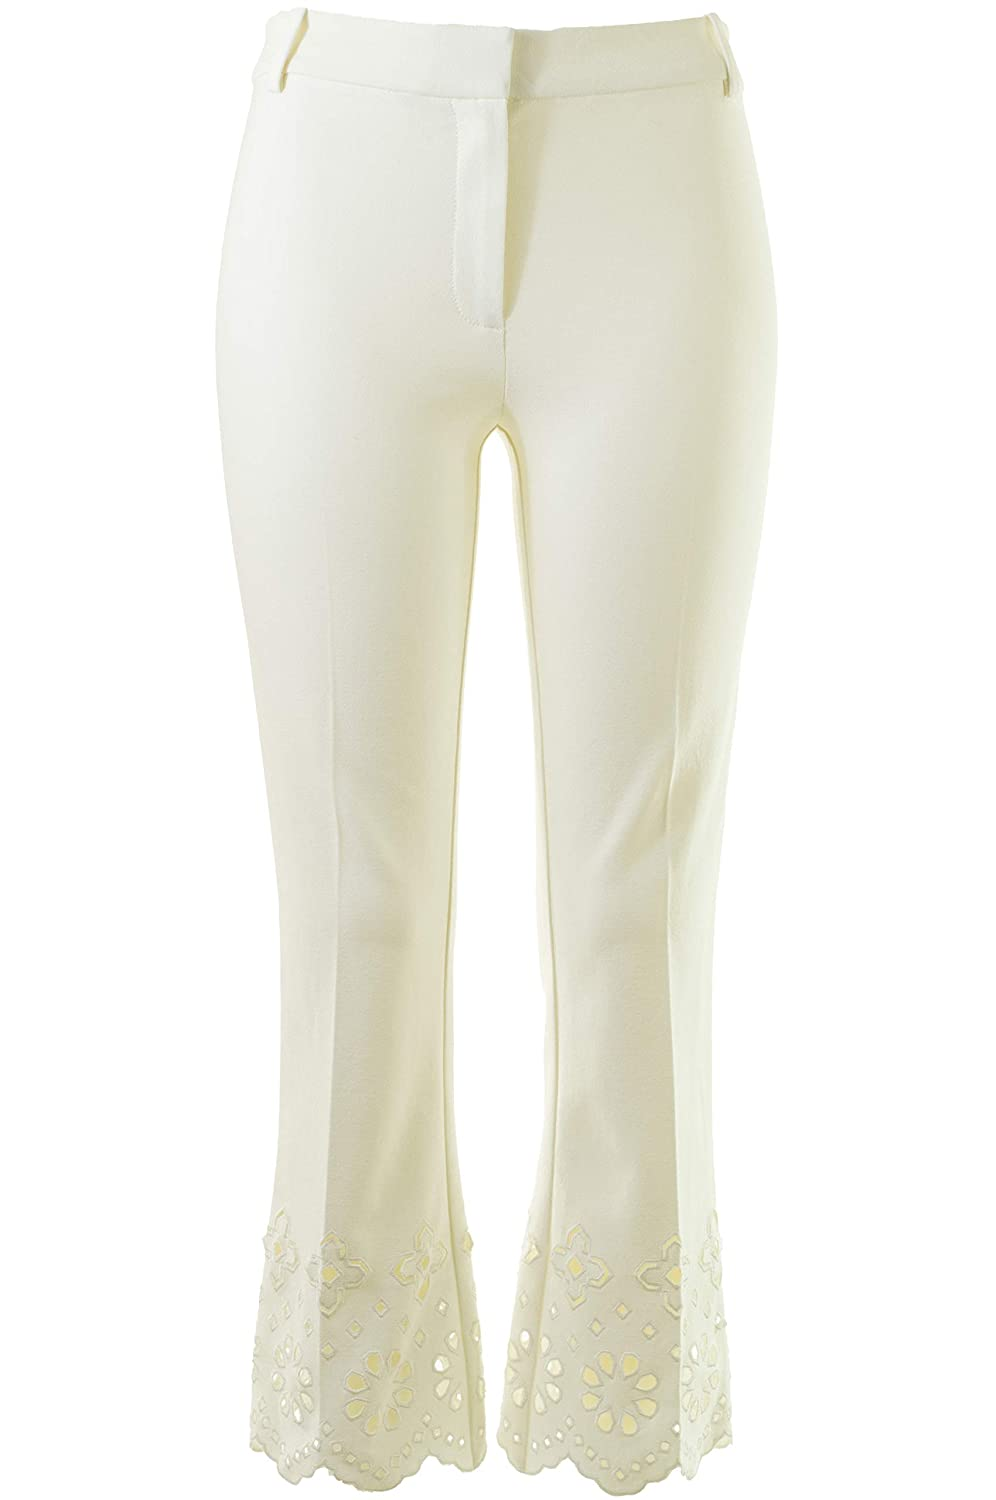 774b260891 Amazon.com: Derek Lam 10 Crosby Eyelet-Detailed Stretch-Cotton Crop Pants  in Soft White: Clothing